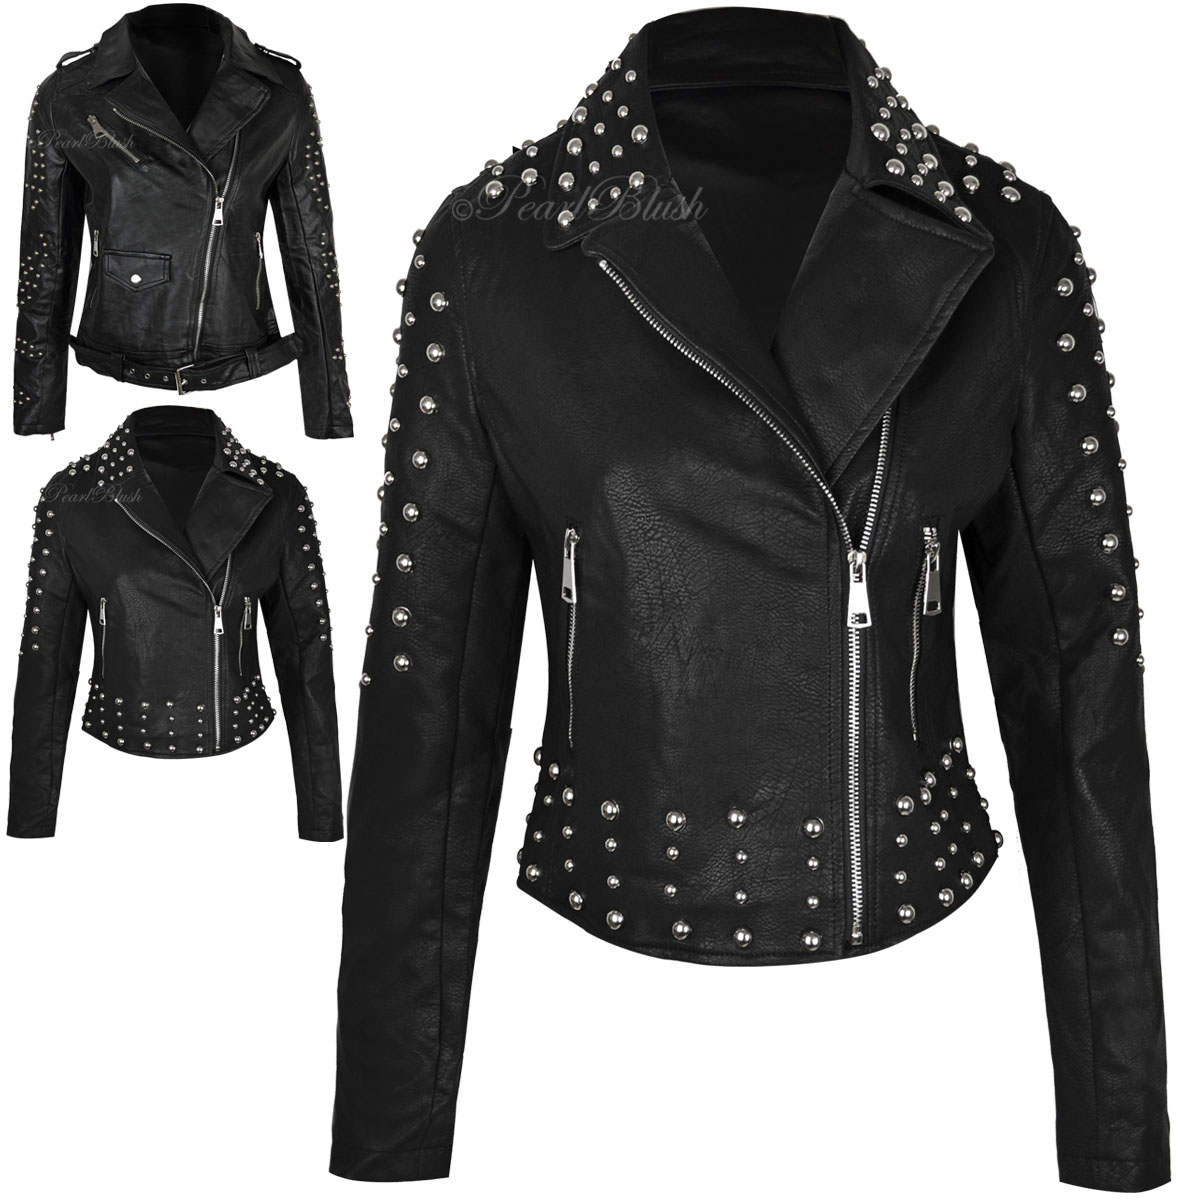 Punk leather jackets for women